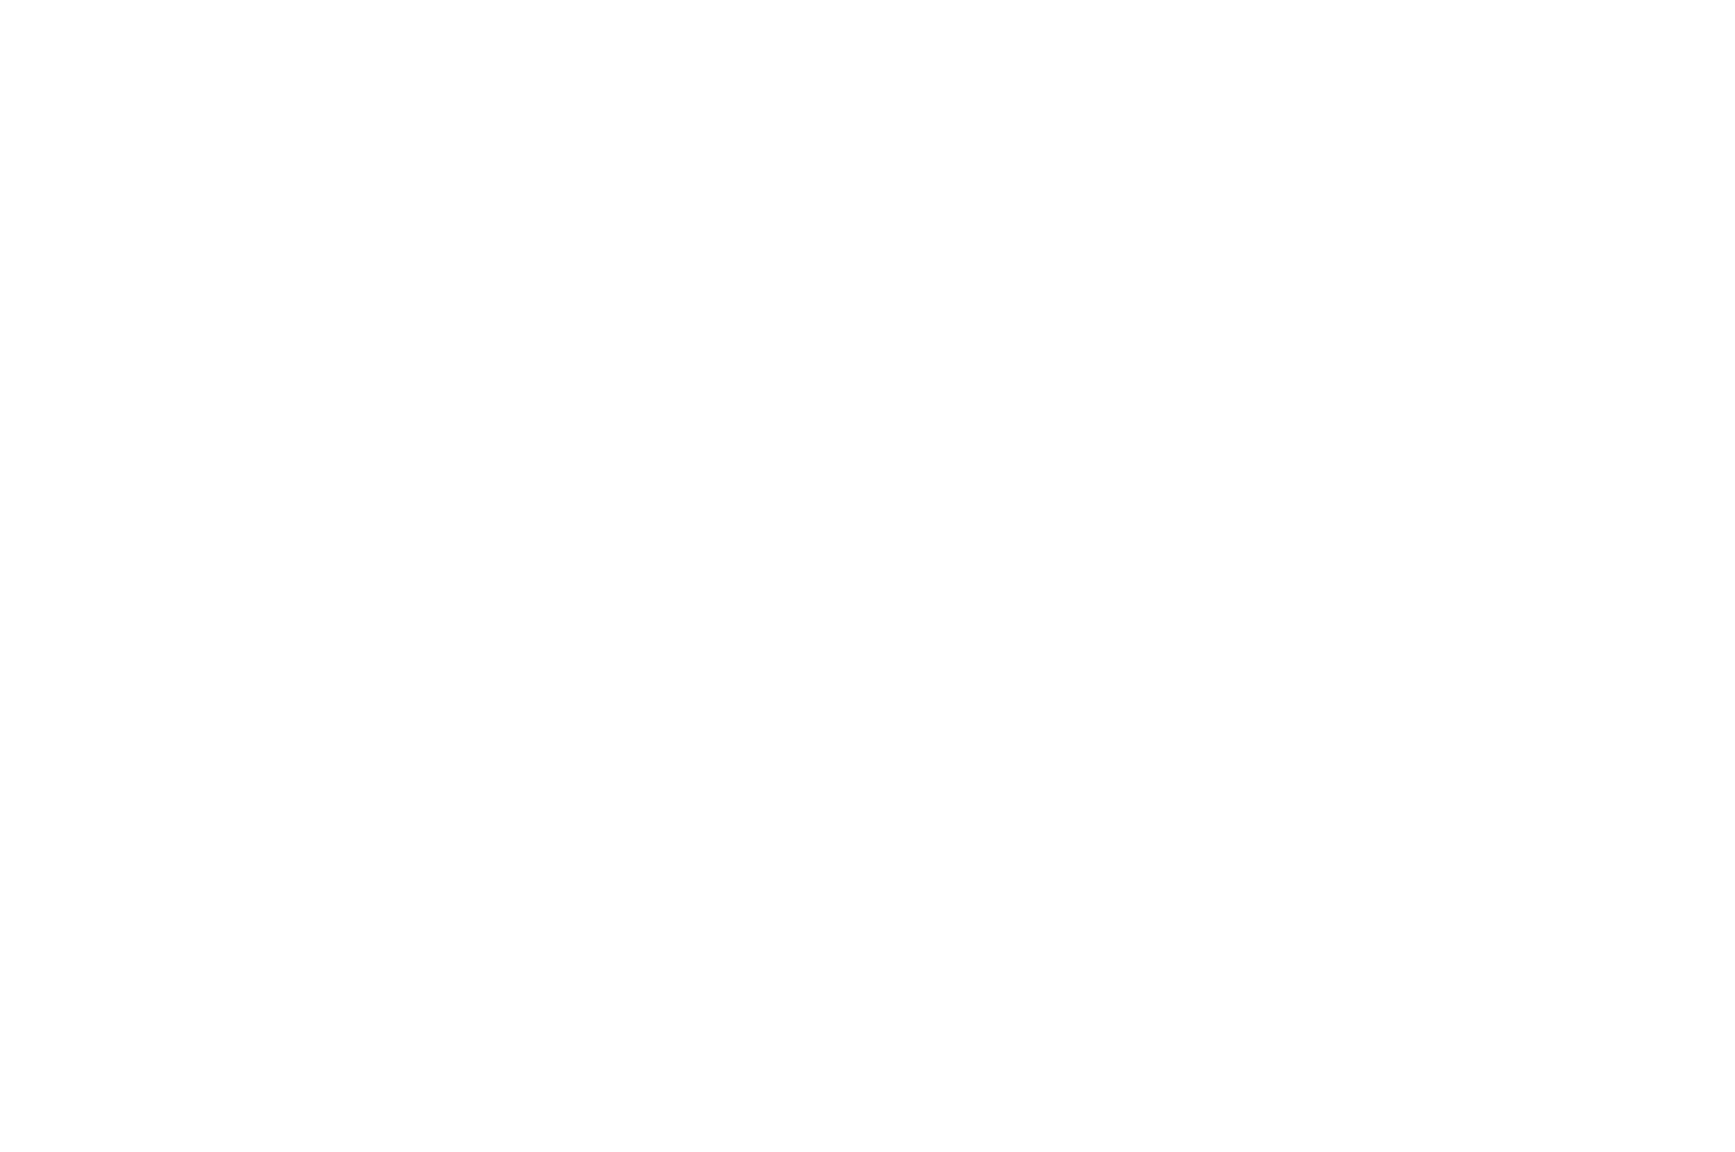 OFFICIAL SELECTION - Sci-Fi Fantasy Genre Lab - Presented by Lift-Off Global Network - 2020